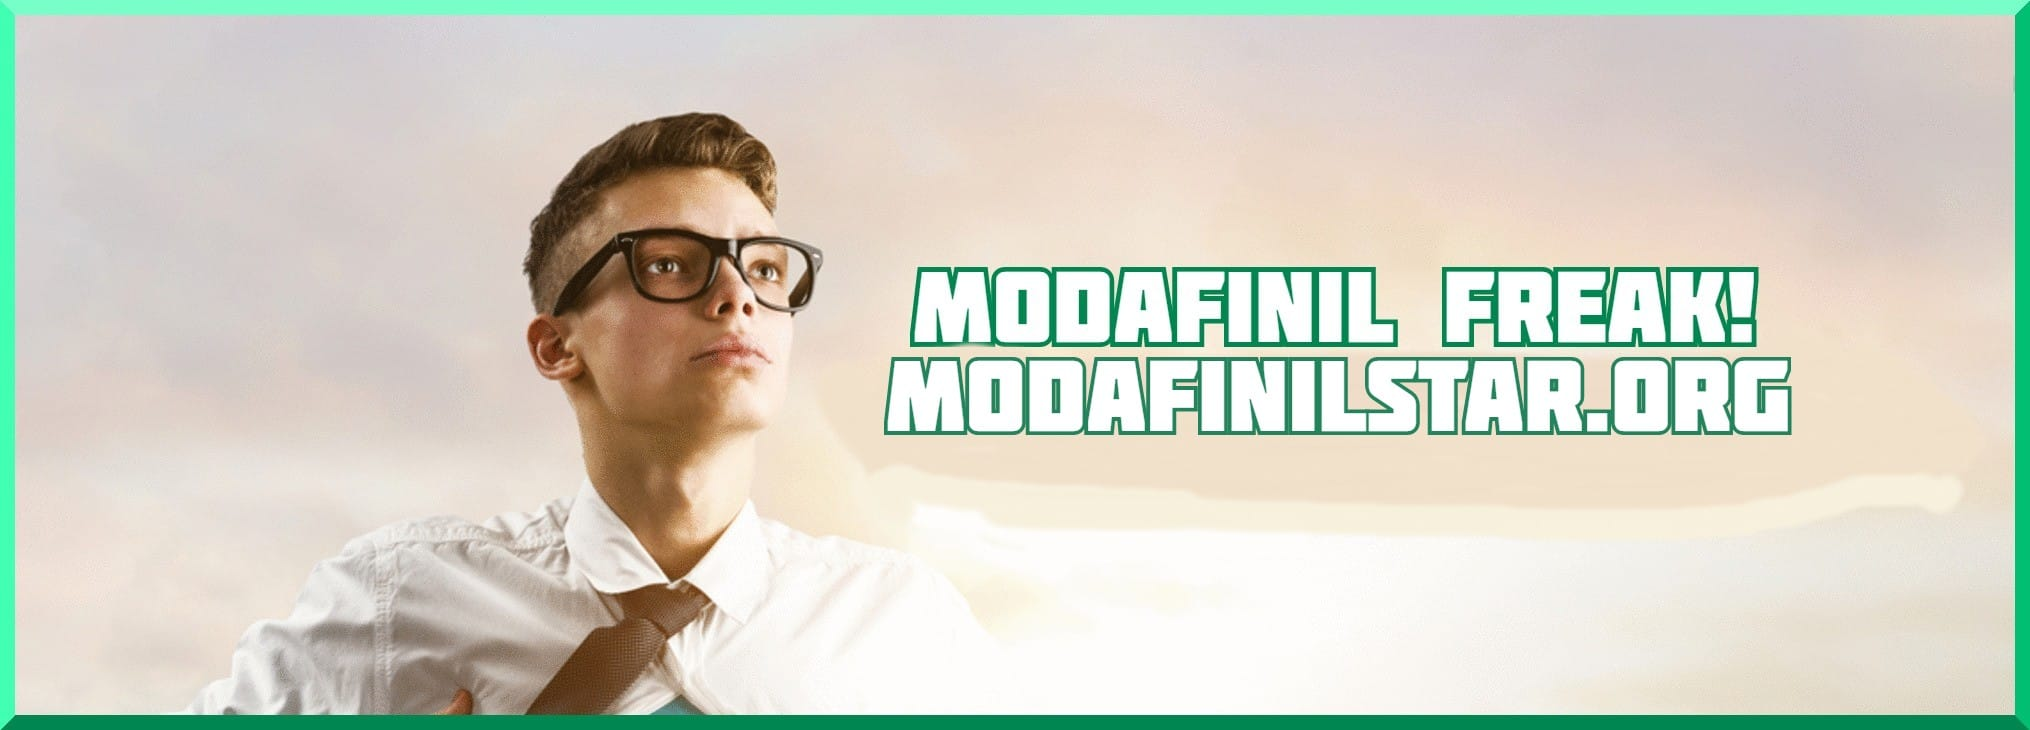 Modafinil-Freak